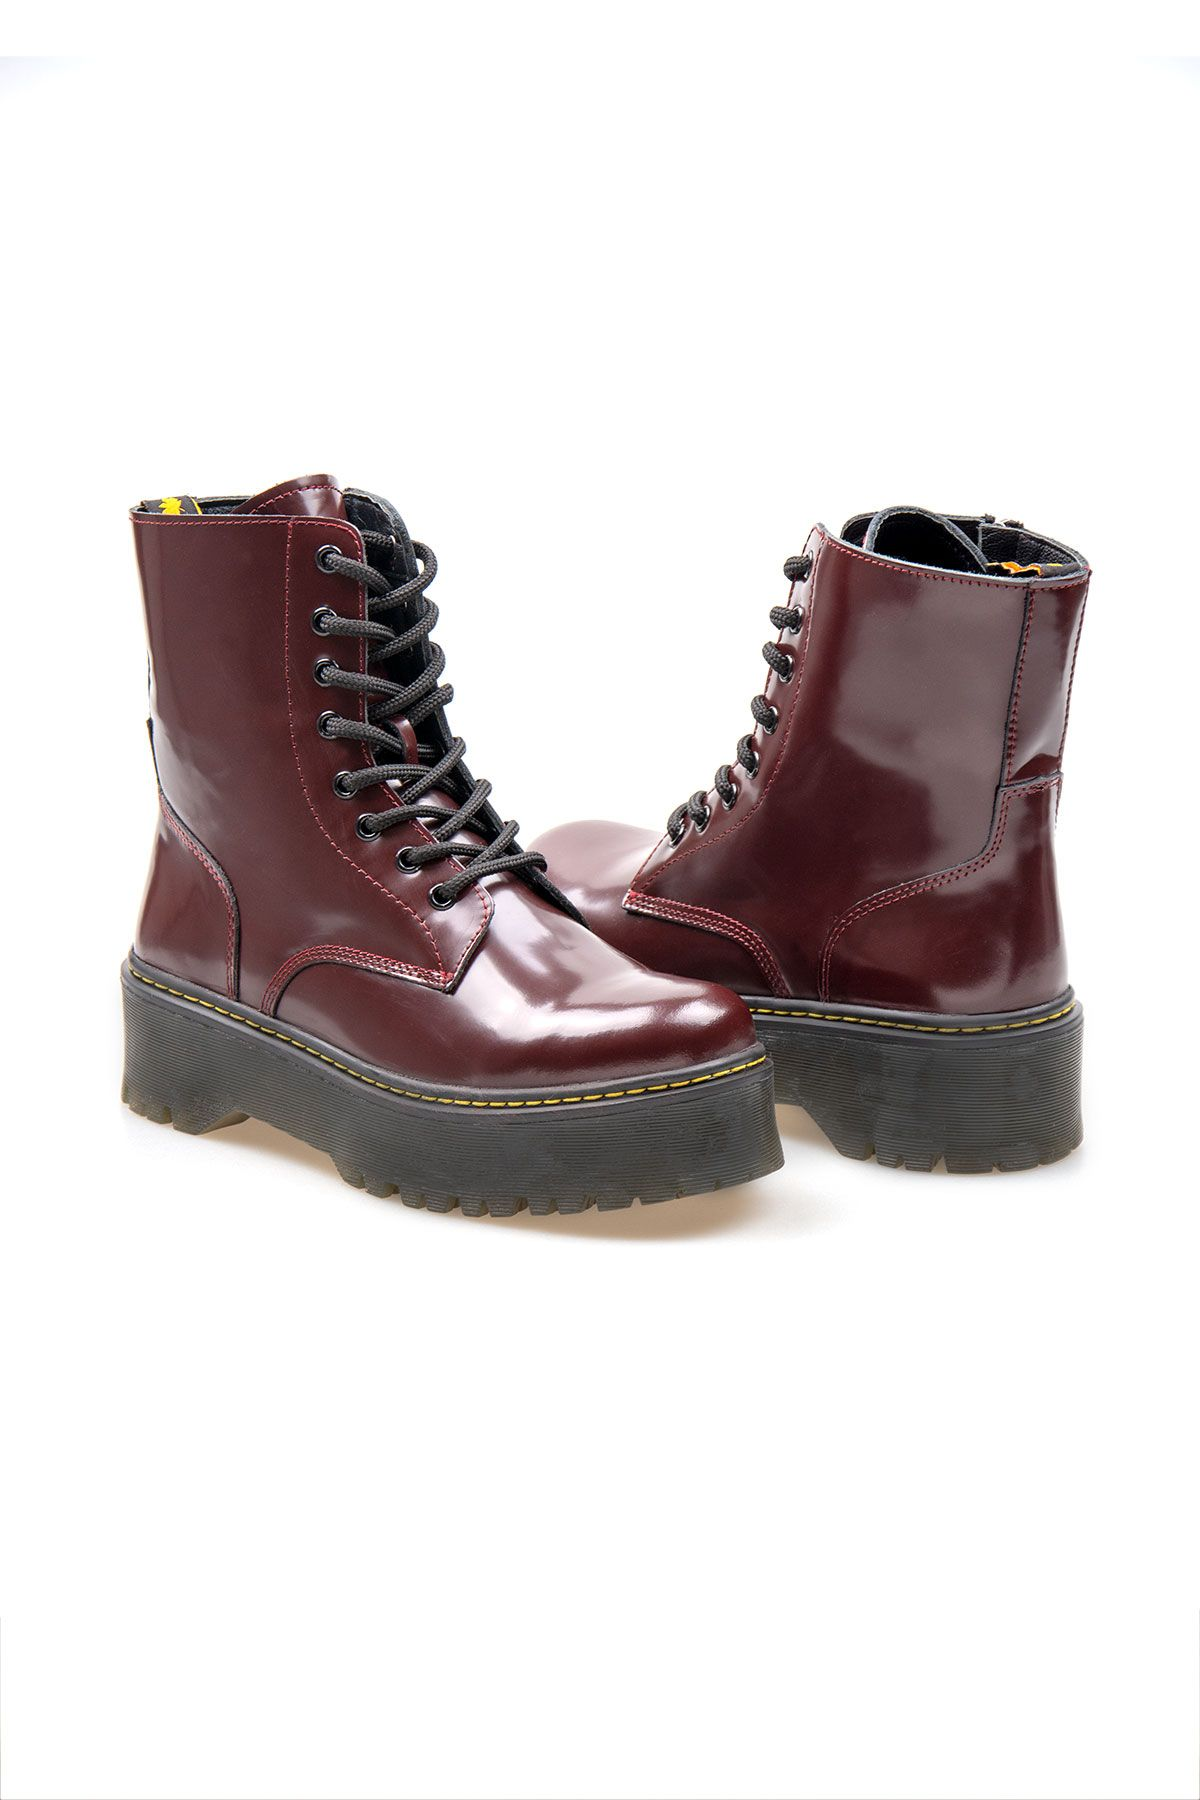 Pegia Genuine Leather Women's Boots 500711 Claret red